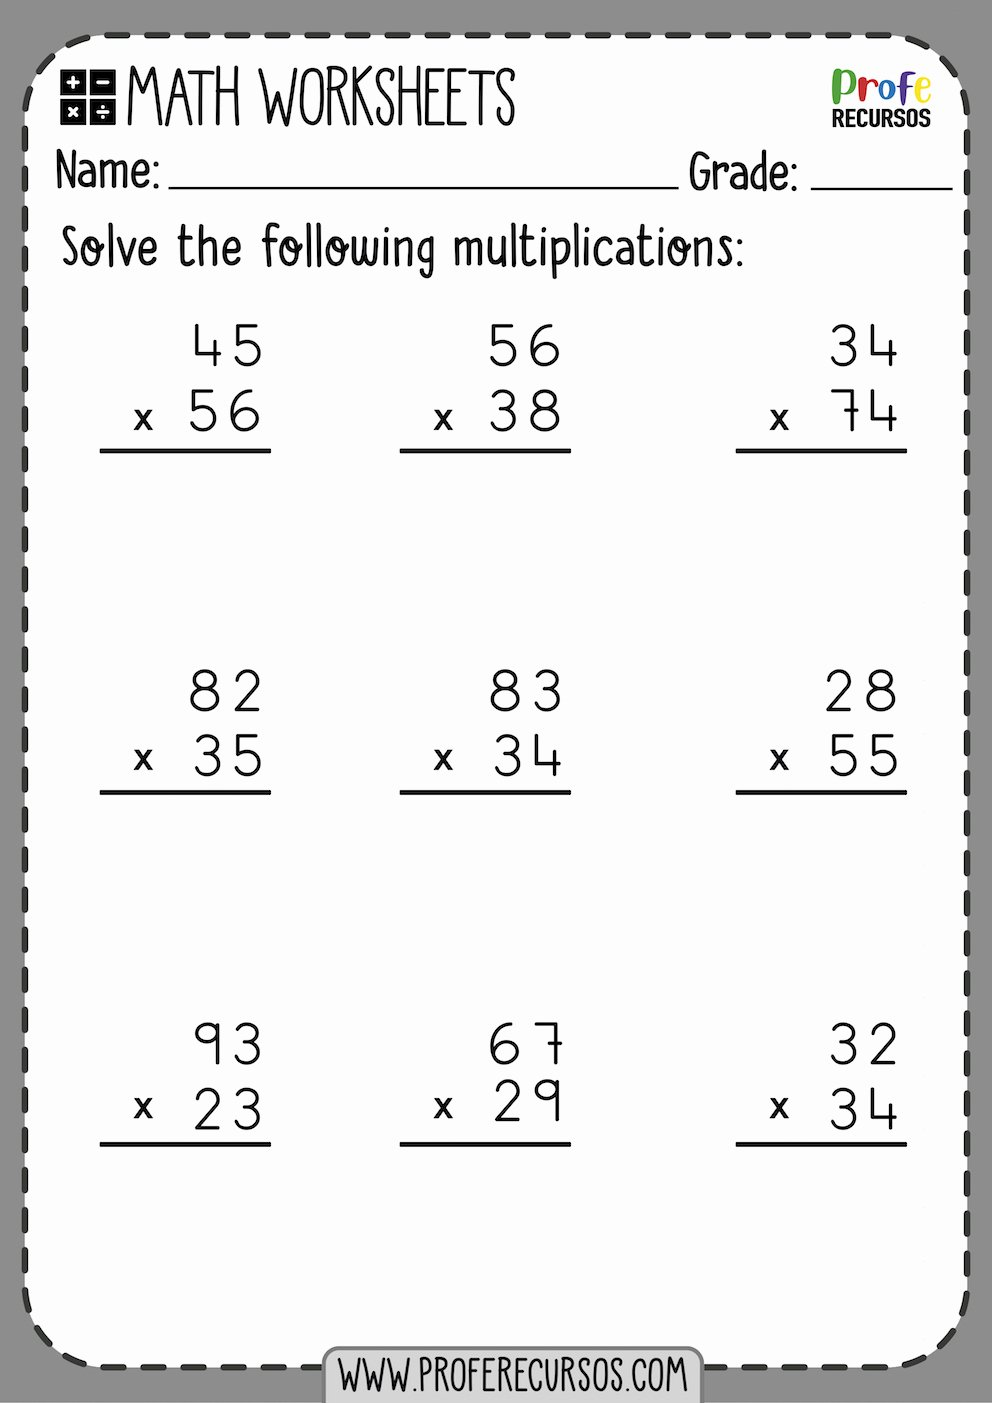 Two Digit Multiplication Worksheets Unique 2 Digit by 2 Digit Multiplication Worksheets